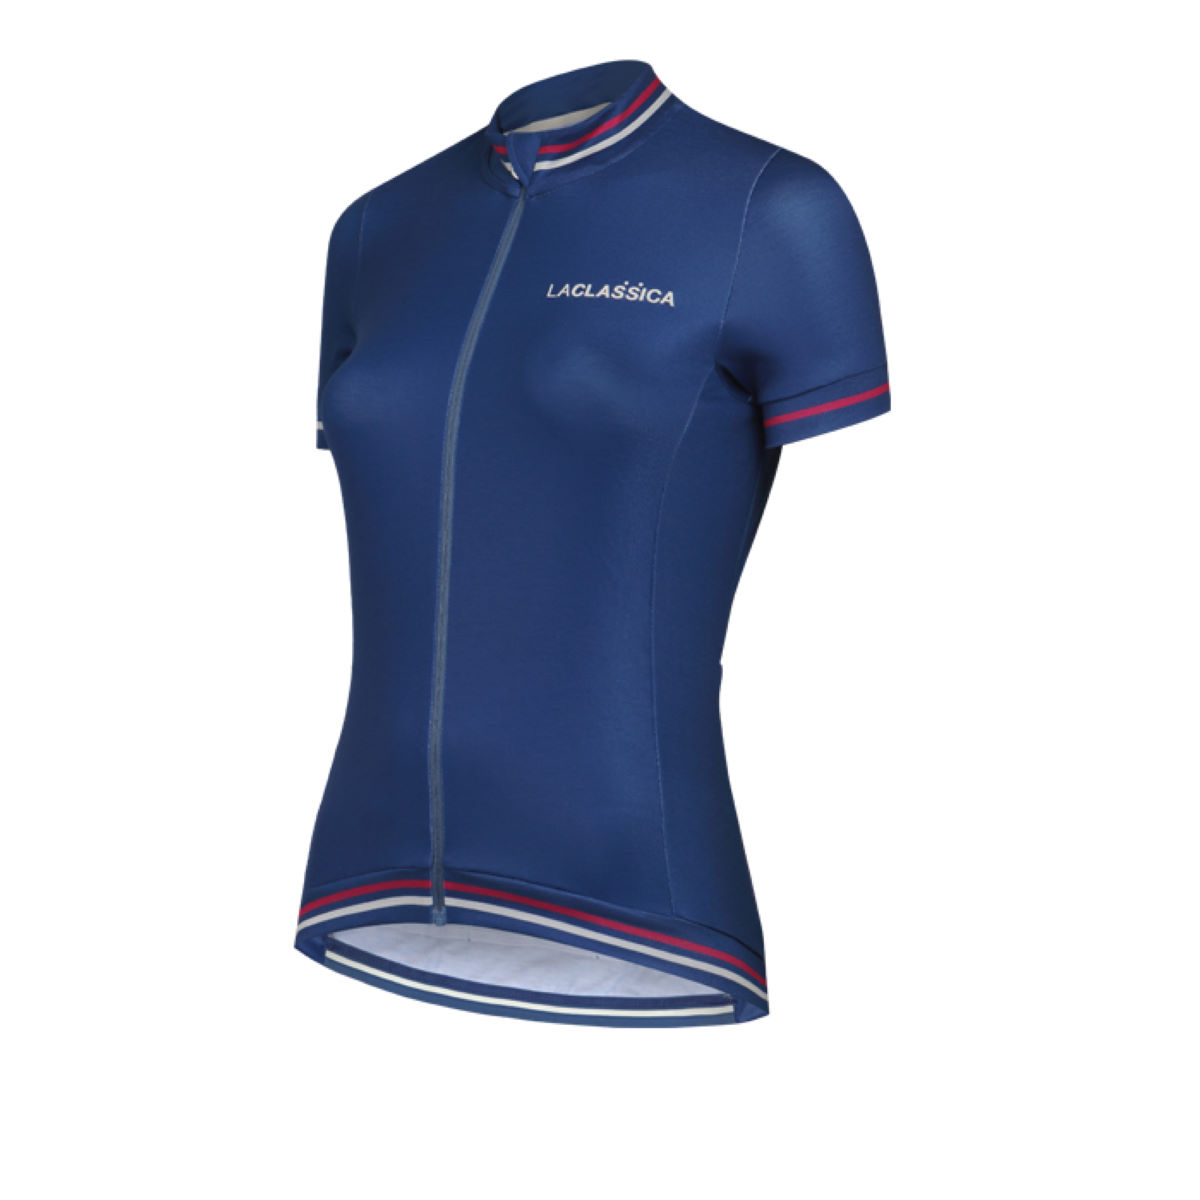 Maillot Femme LaClassica Vintage - M Blue Moon /Guatemala Maillots